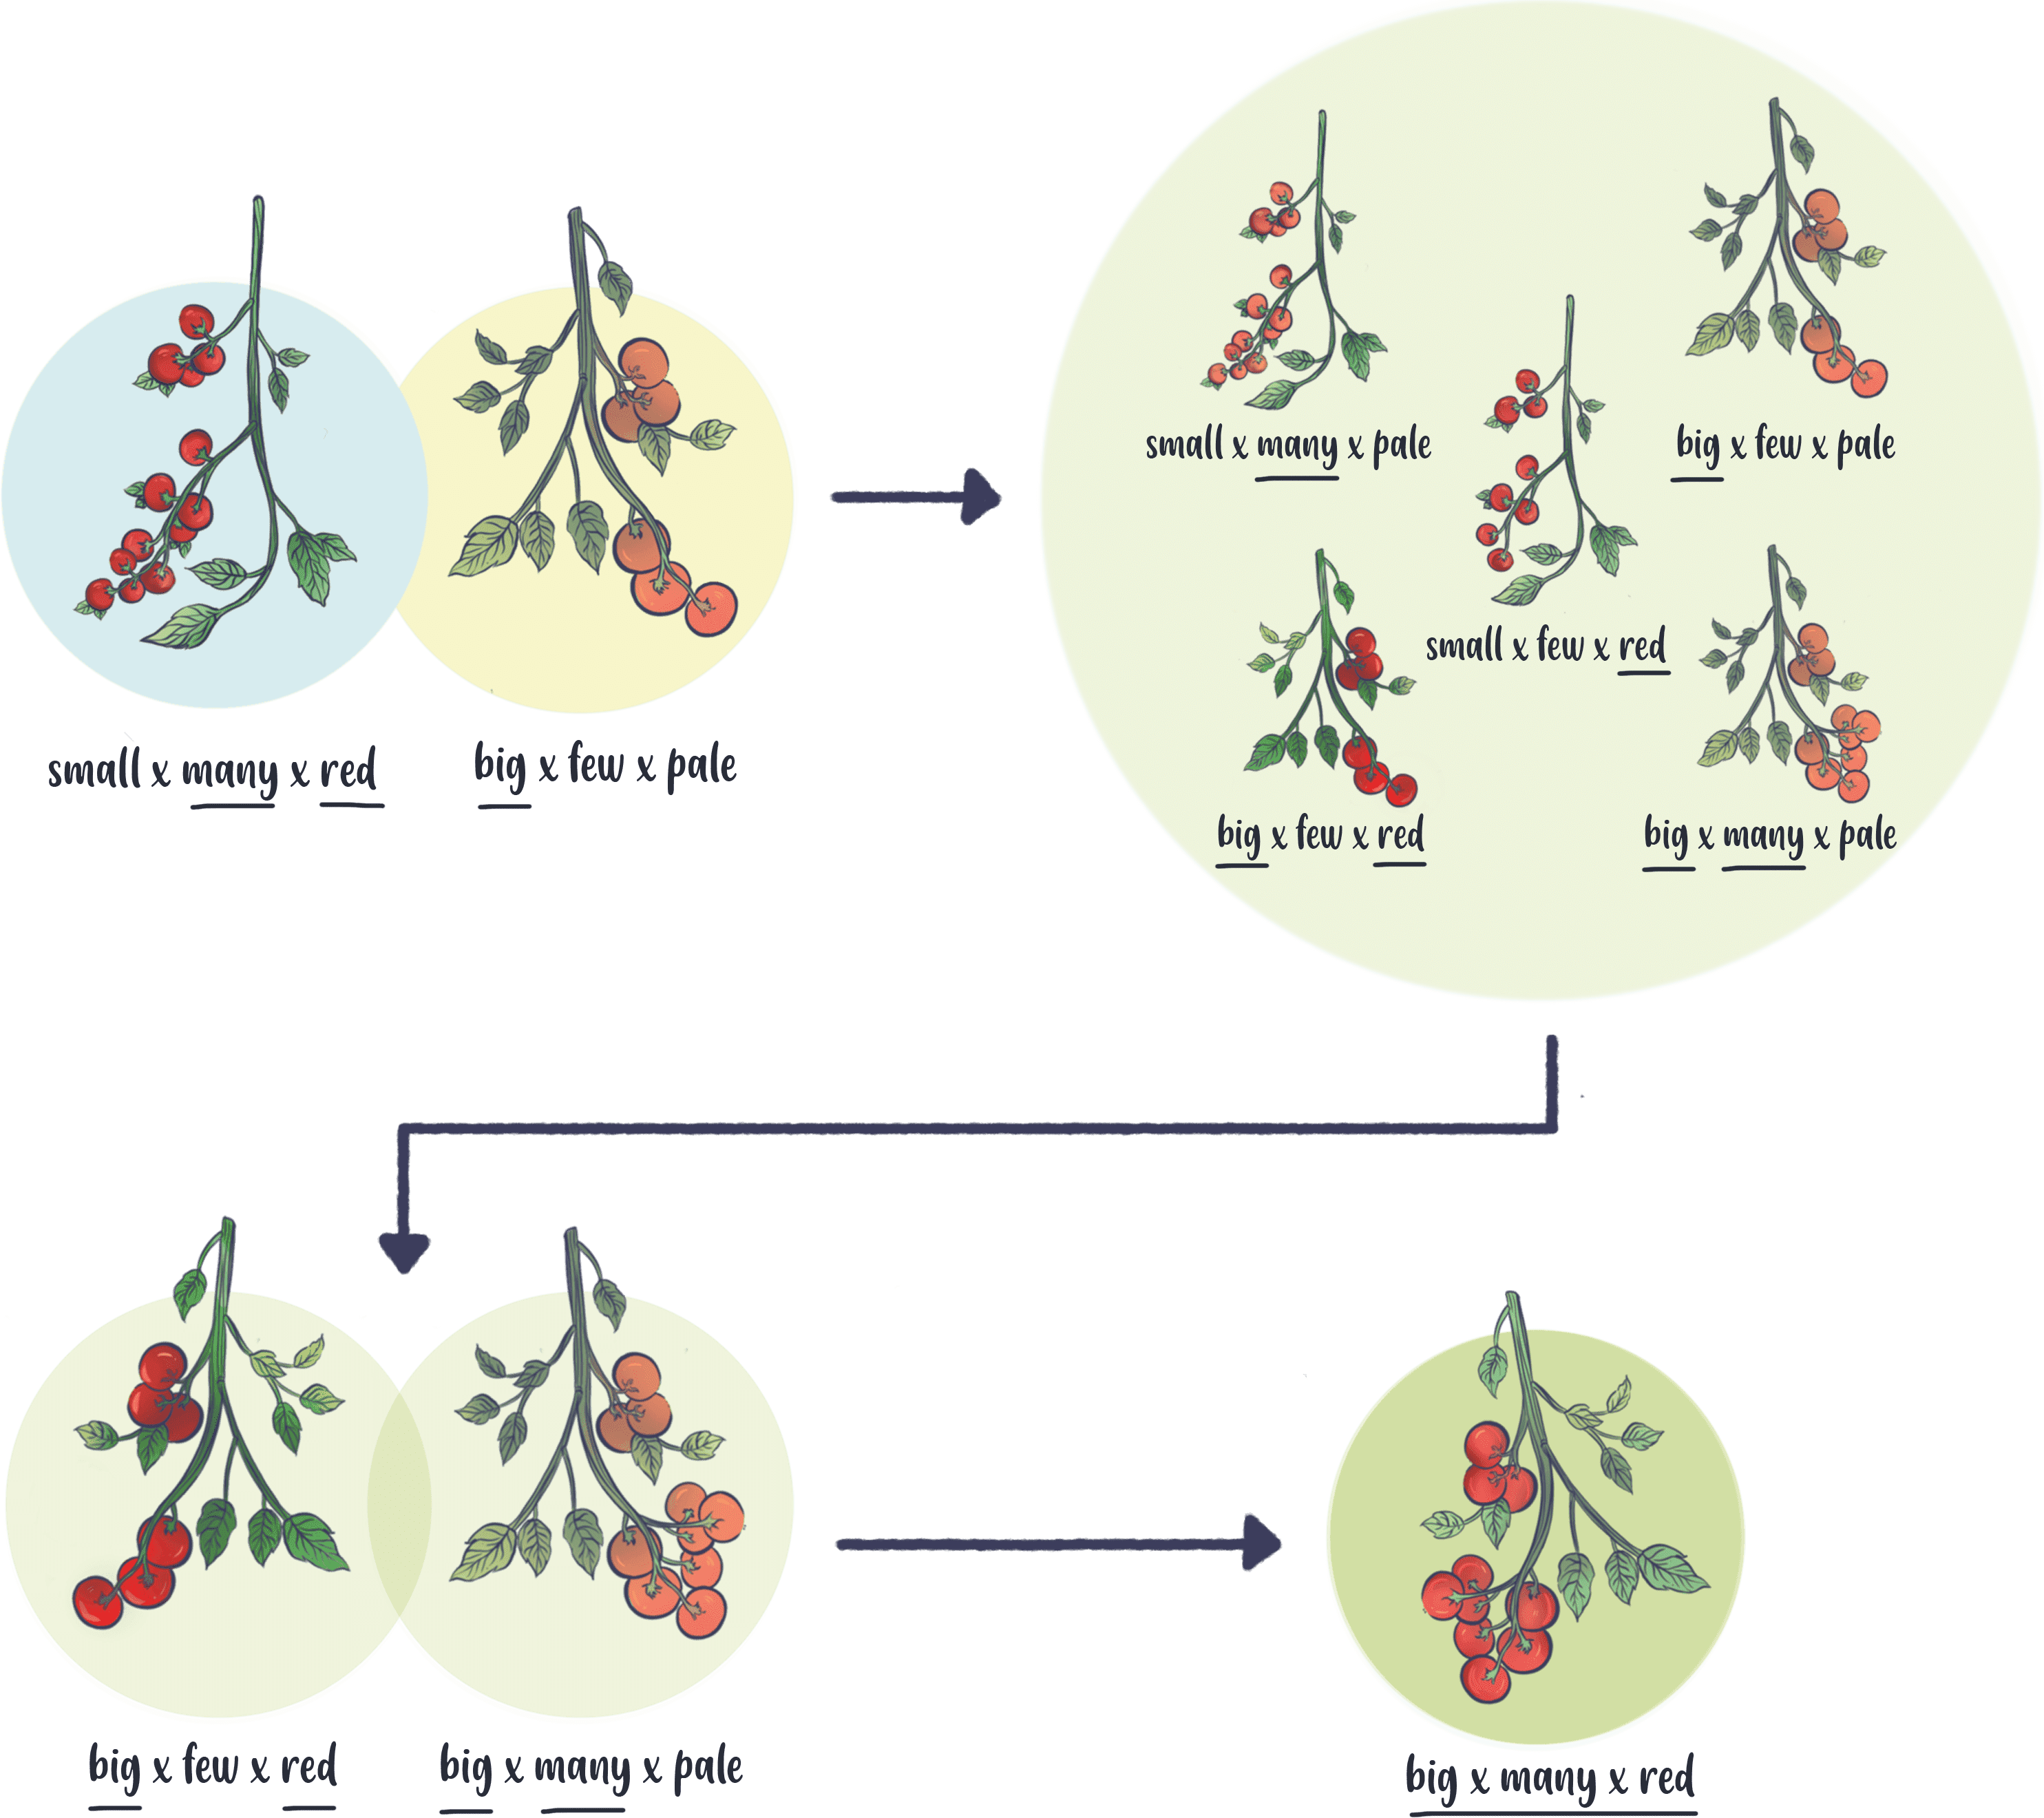 Illustration of selective breeding of tomatoes. Over generations, selecting for the traits you desire changes the genetic make-up of the plant population